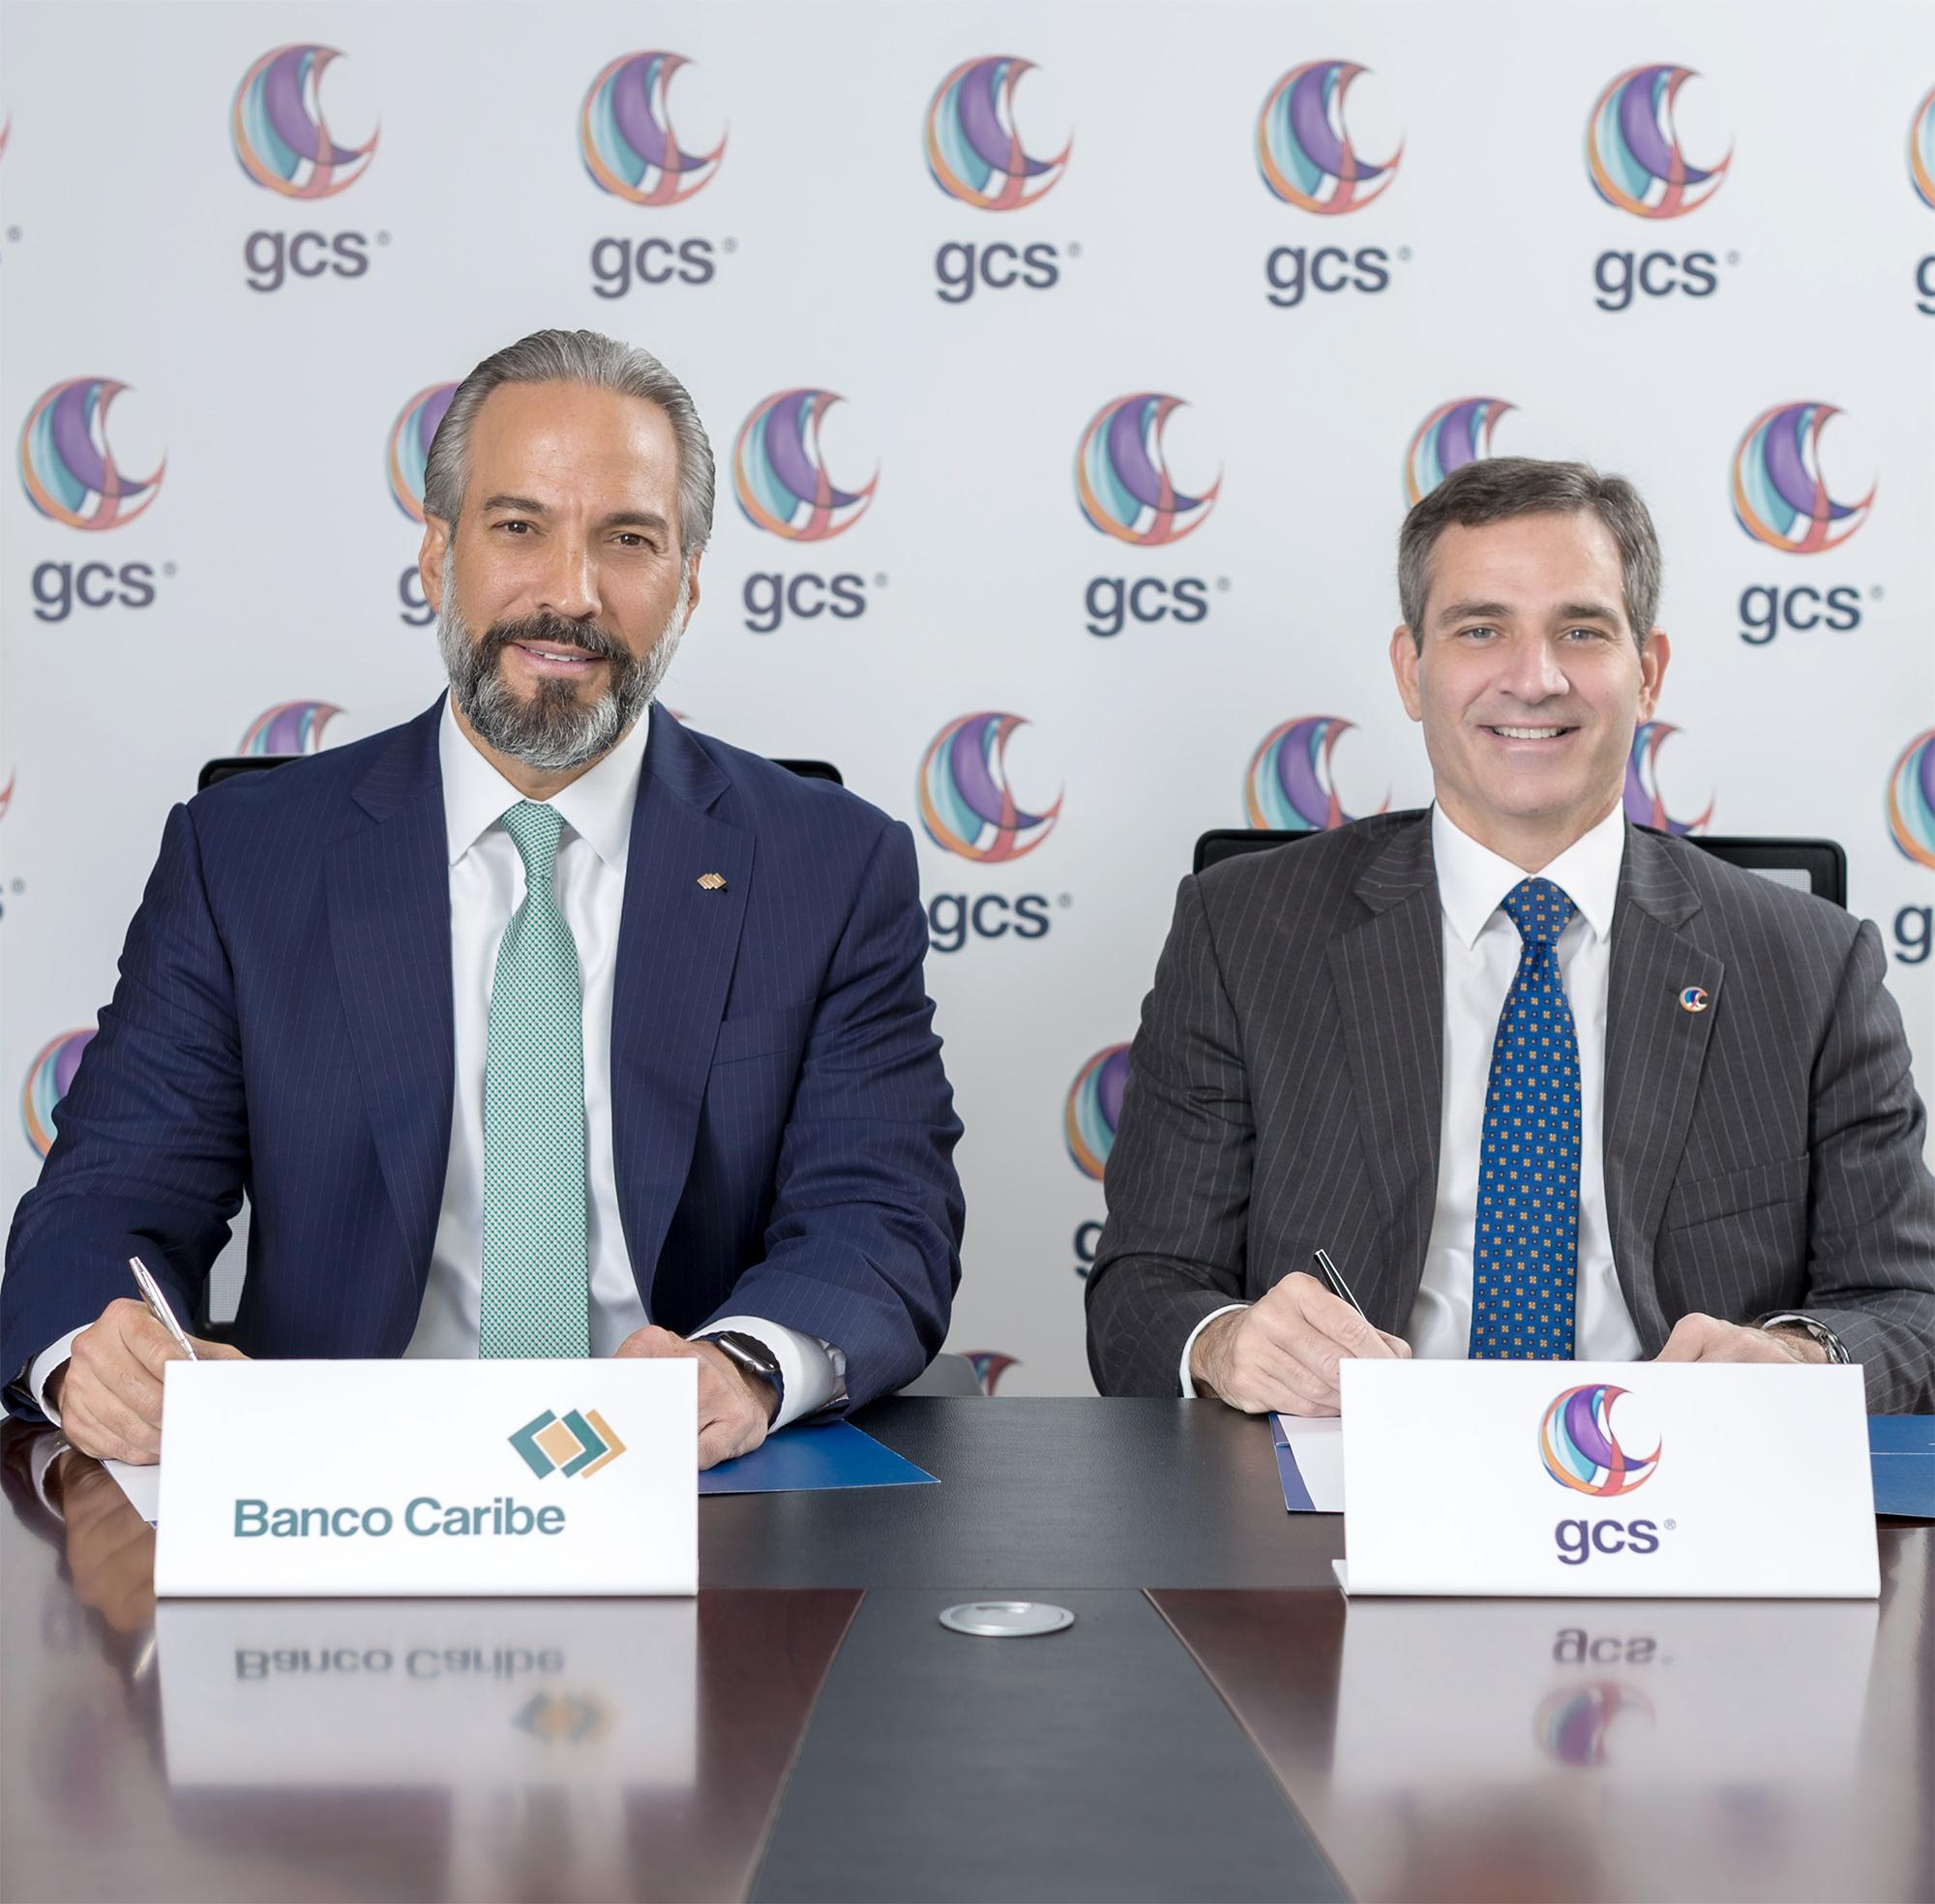 Alianza entre GCS y Banco Caribe - image  on https://gcs-international.com